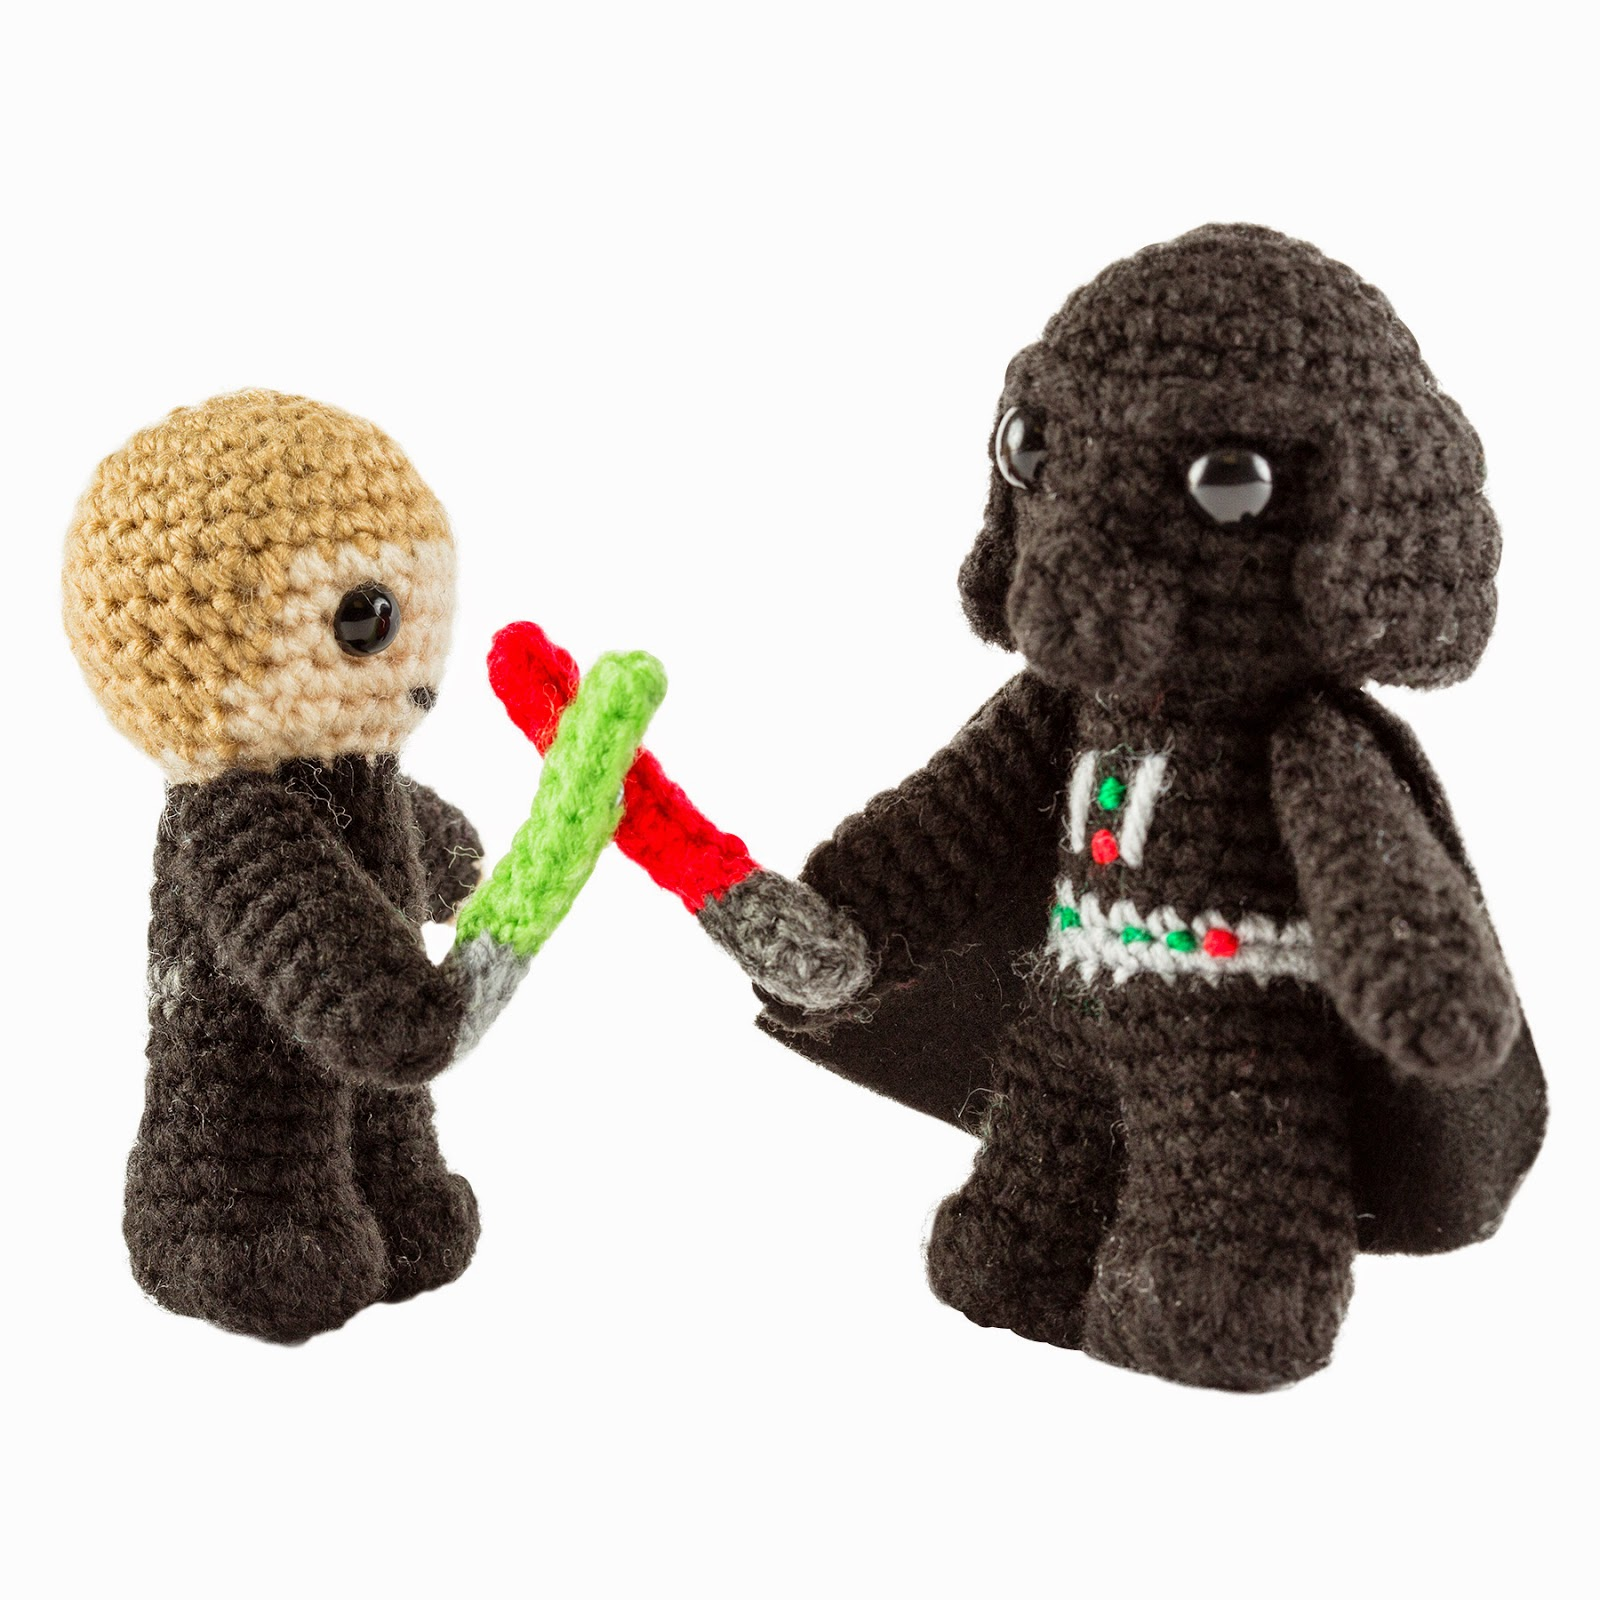 Crochet Stitches Kit : LucyRavenscar - Crochet Creatures: Star Wars Crochet Kit